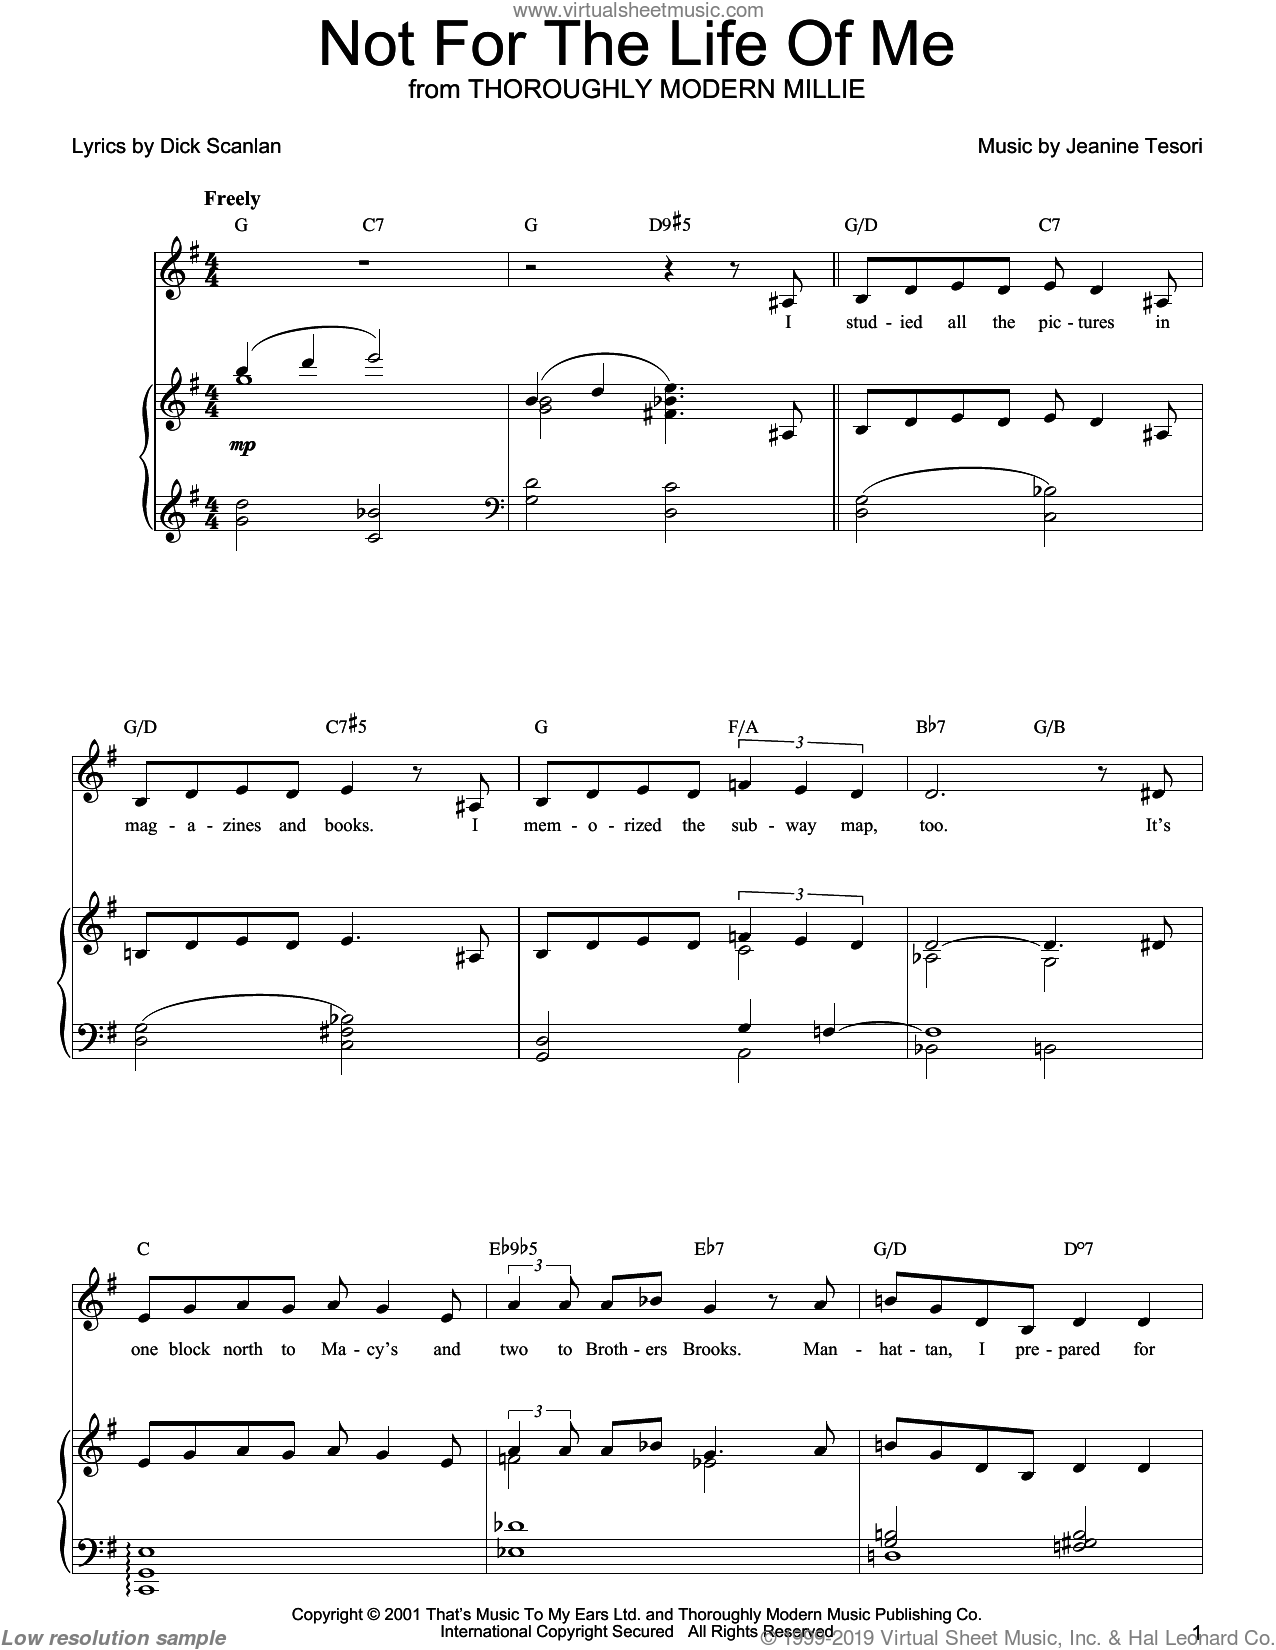 Not For The Life Of Me sheet music for voice, piano or guitar by Dick Scanlan and Jeanine Tesori. Score Image Preview.